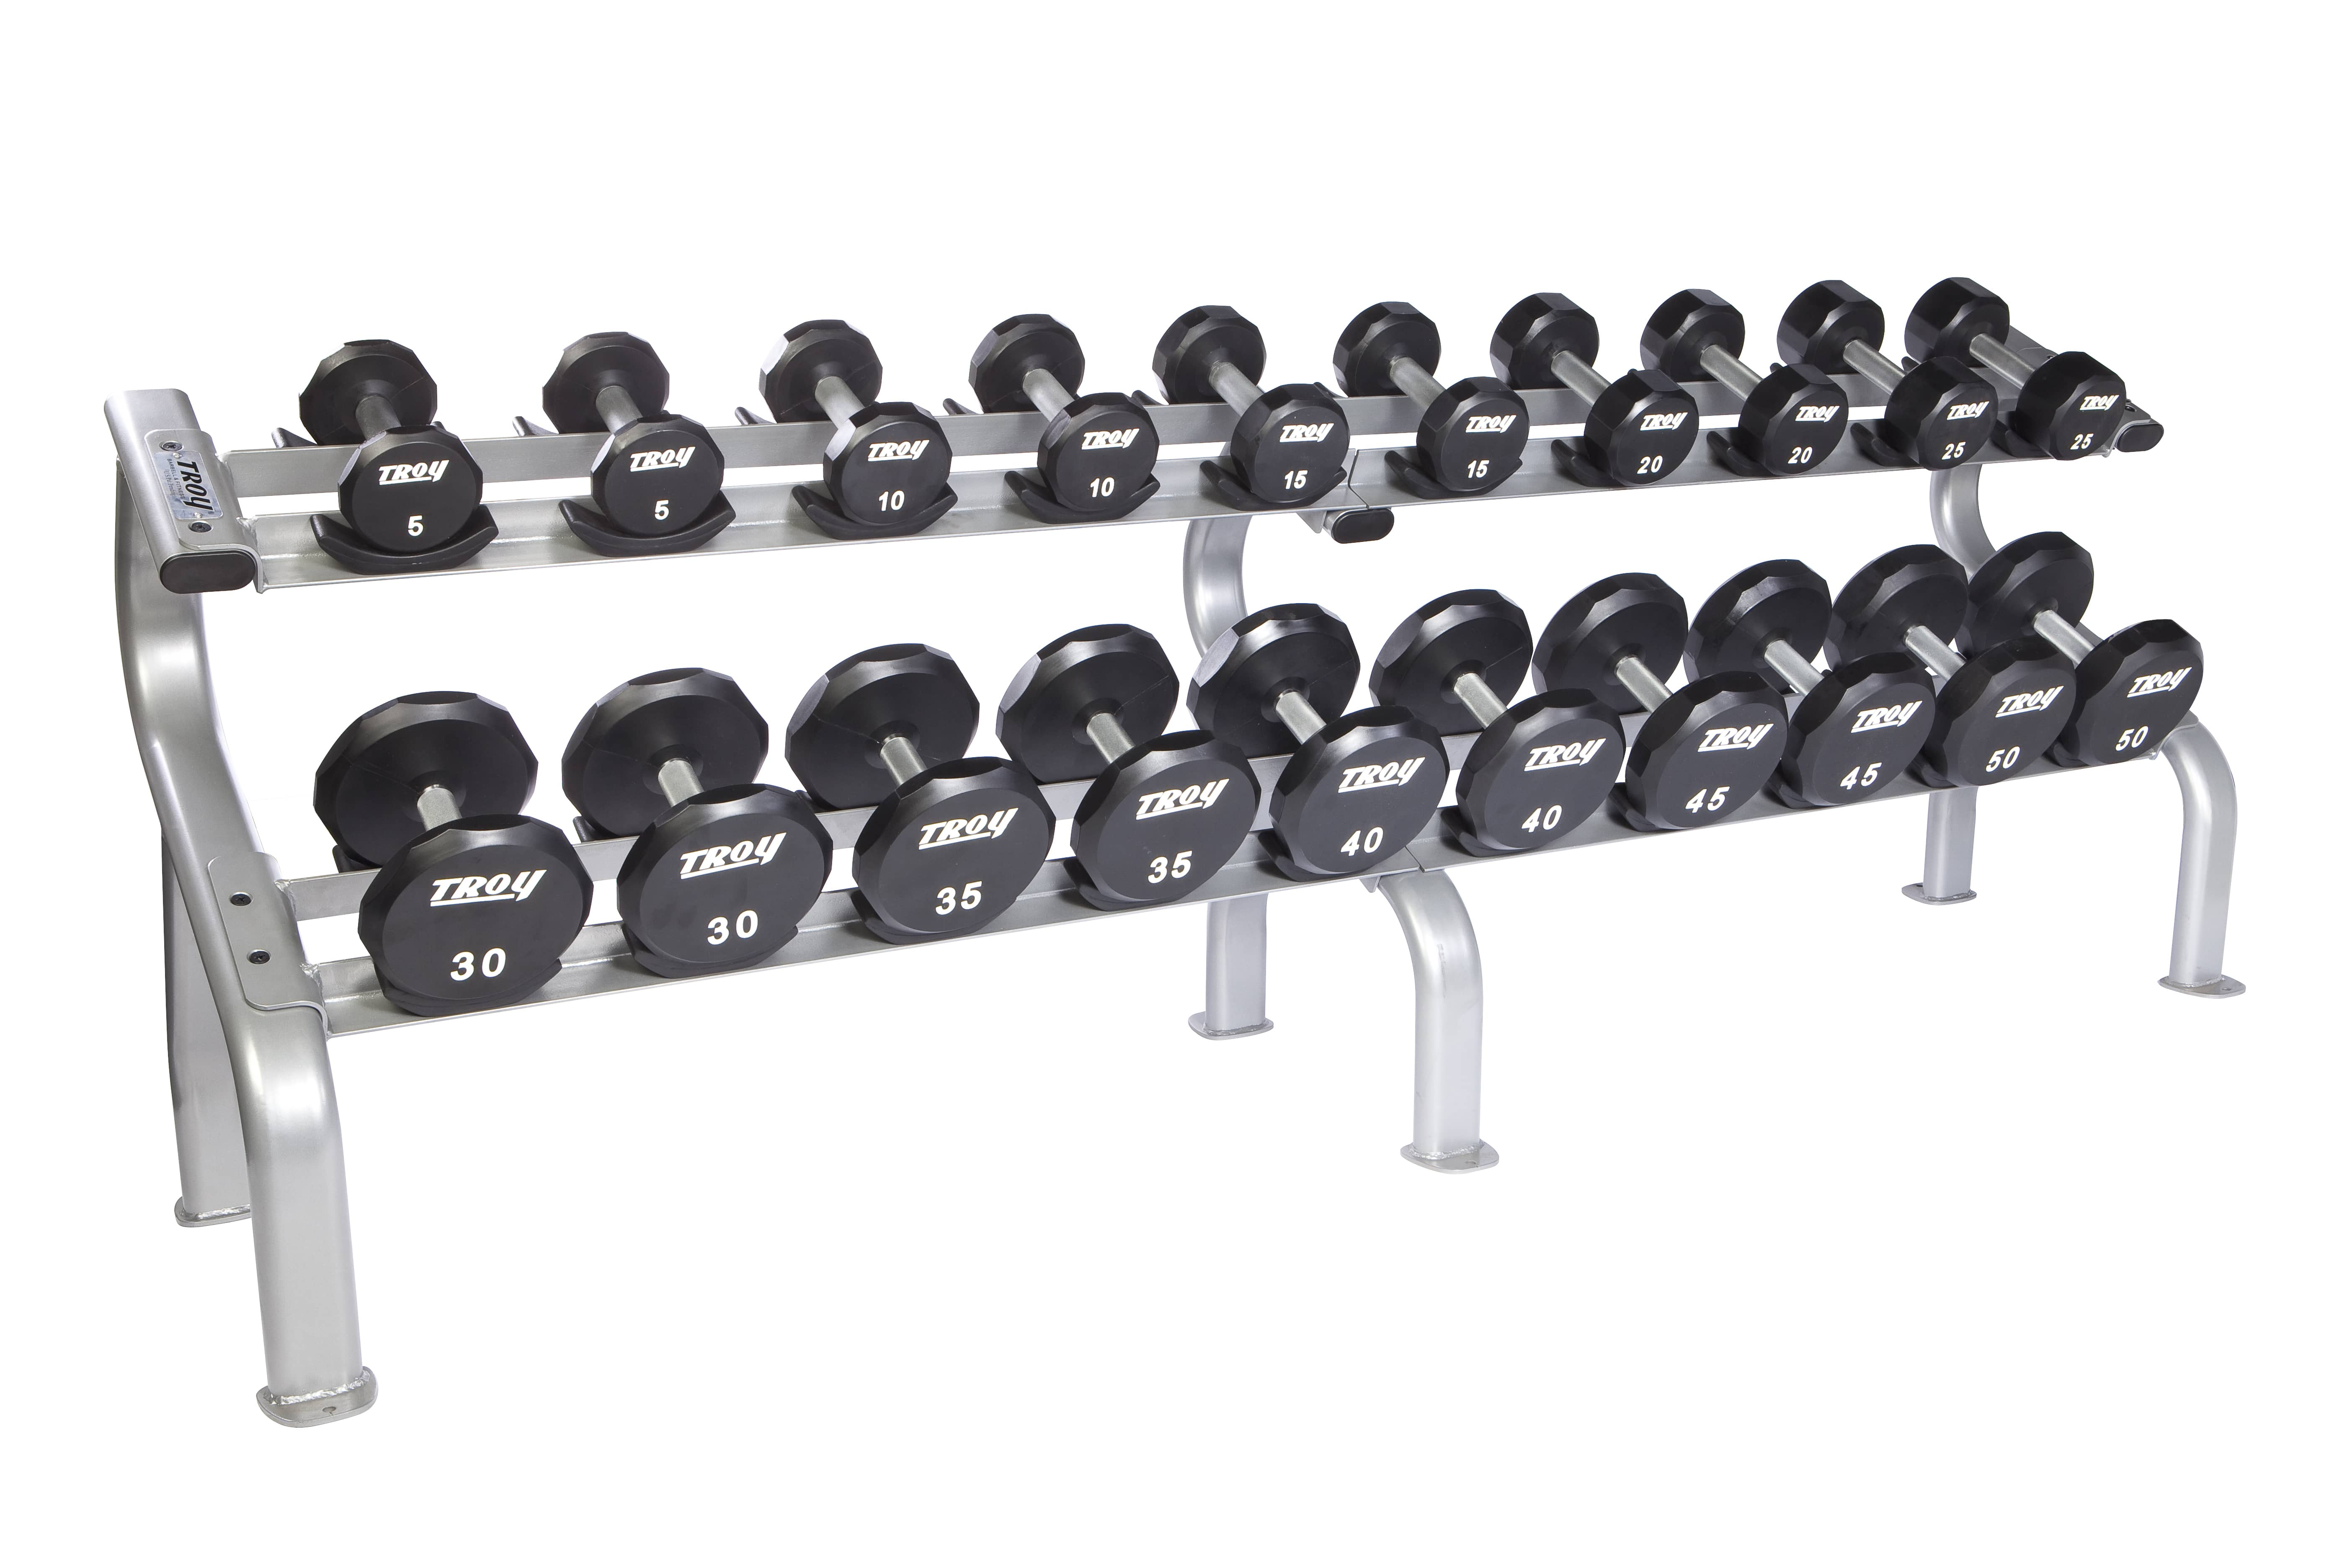 Troy 5-100 lbs. (20 Pairs) Urethane Dumbbell Weight Set w/ 2 Racks - Flat 12-Sided Head (Commercial Gym Quality) by Troy Barbell